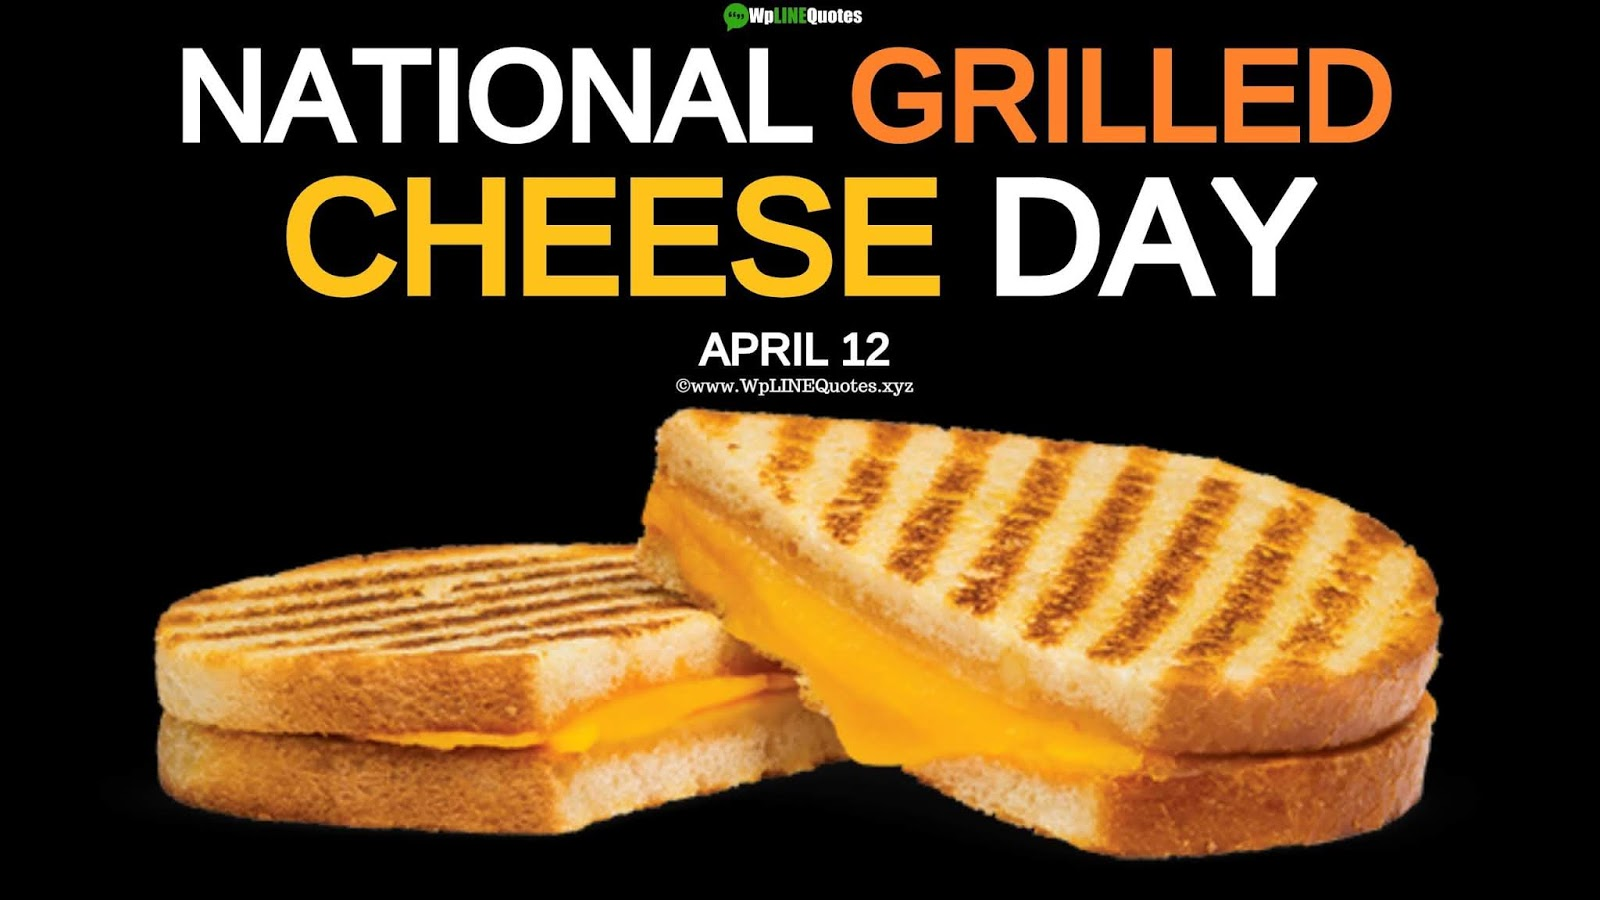 National Grilled Cheese Day Quotes, Memes, History, Fun Facts, Images, Pictures, Wallpaper